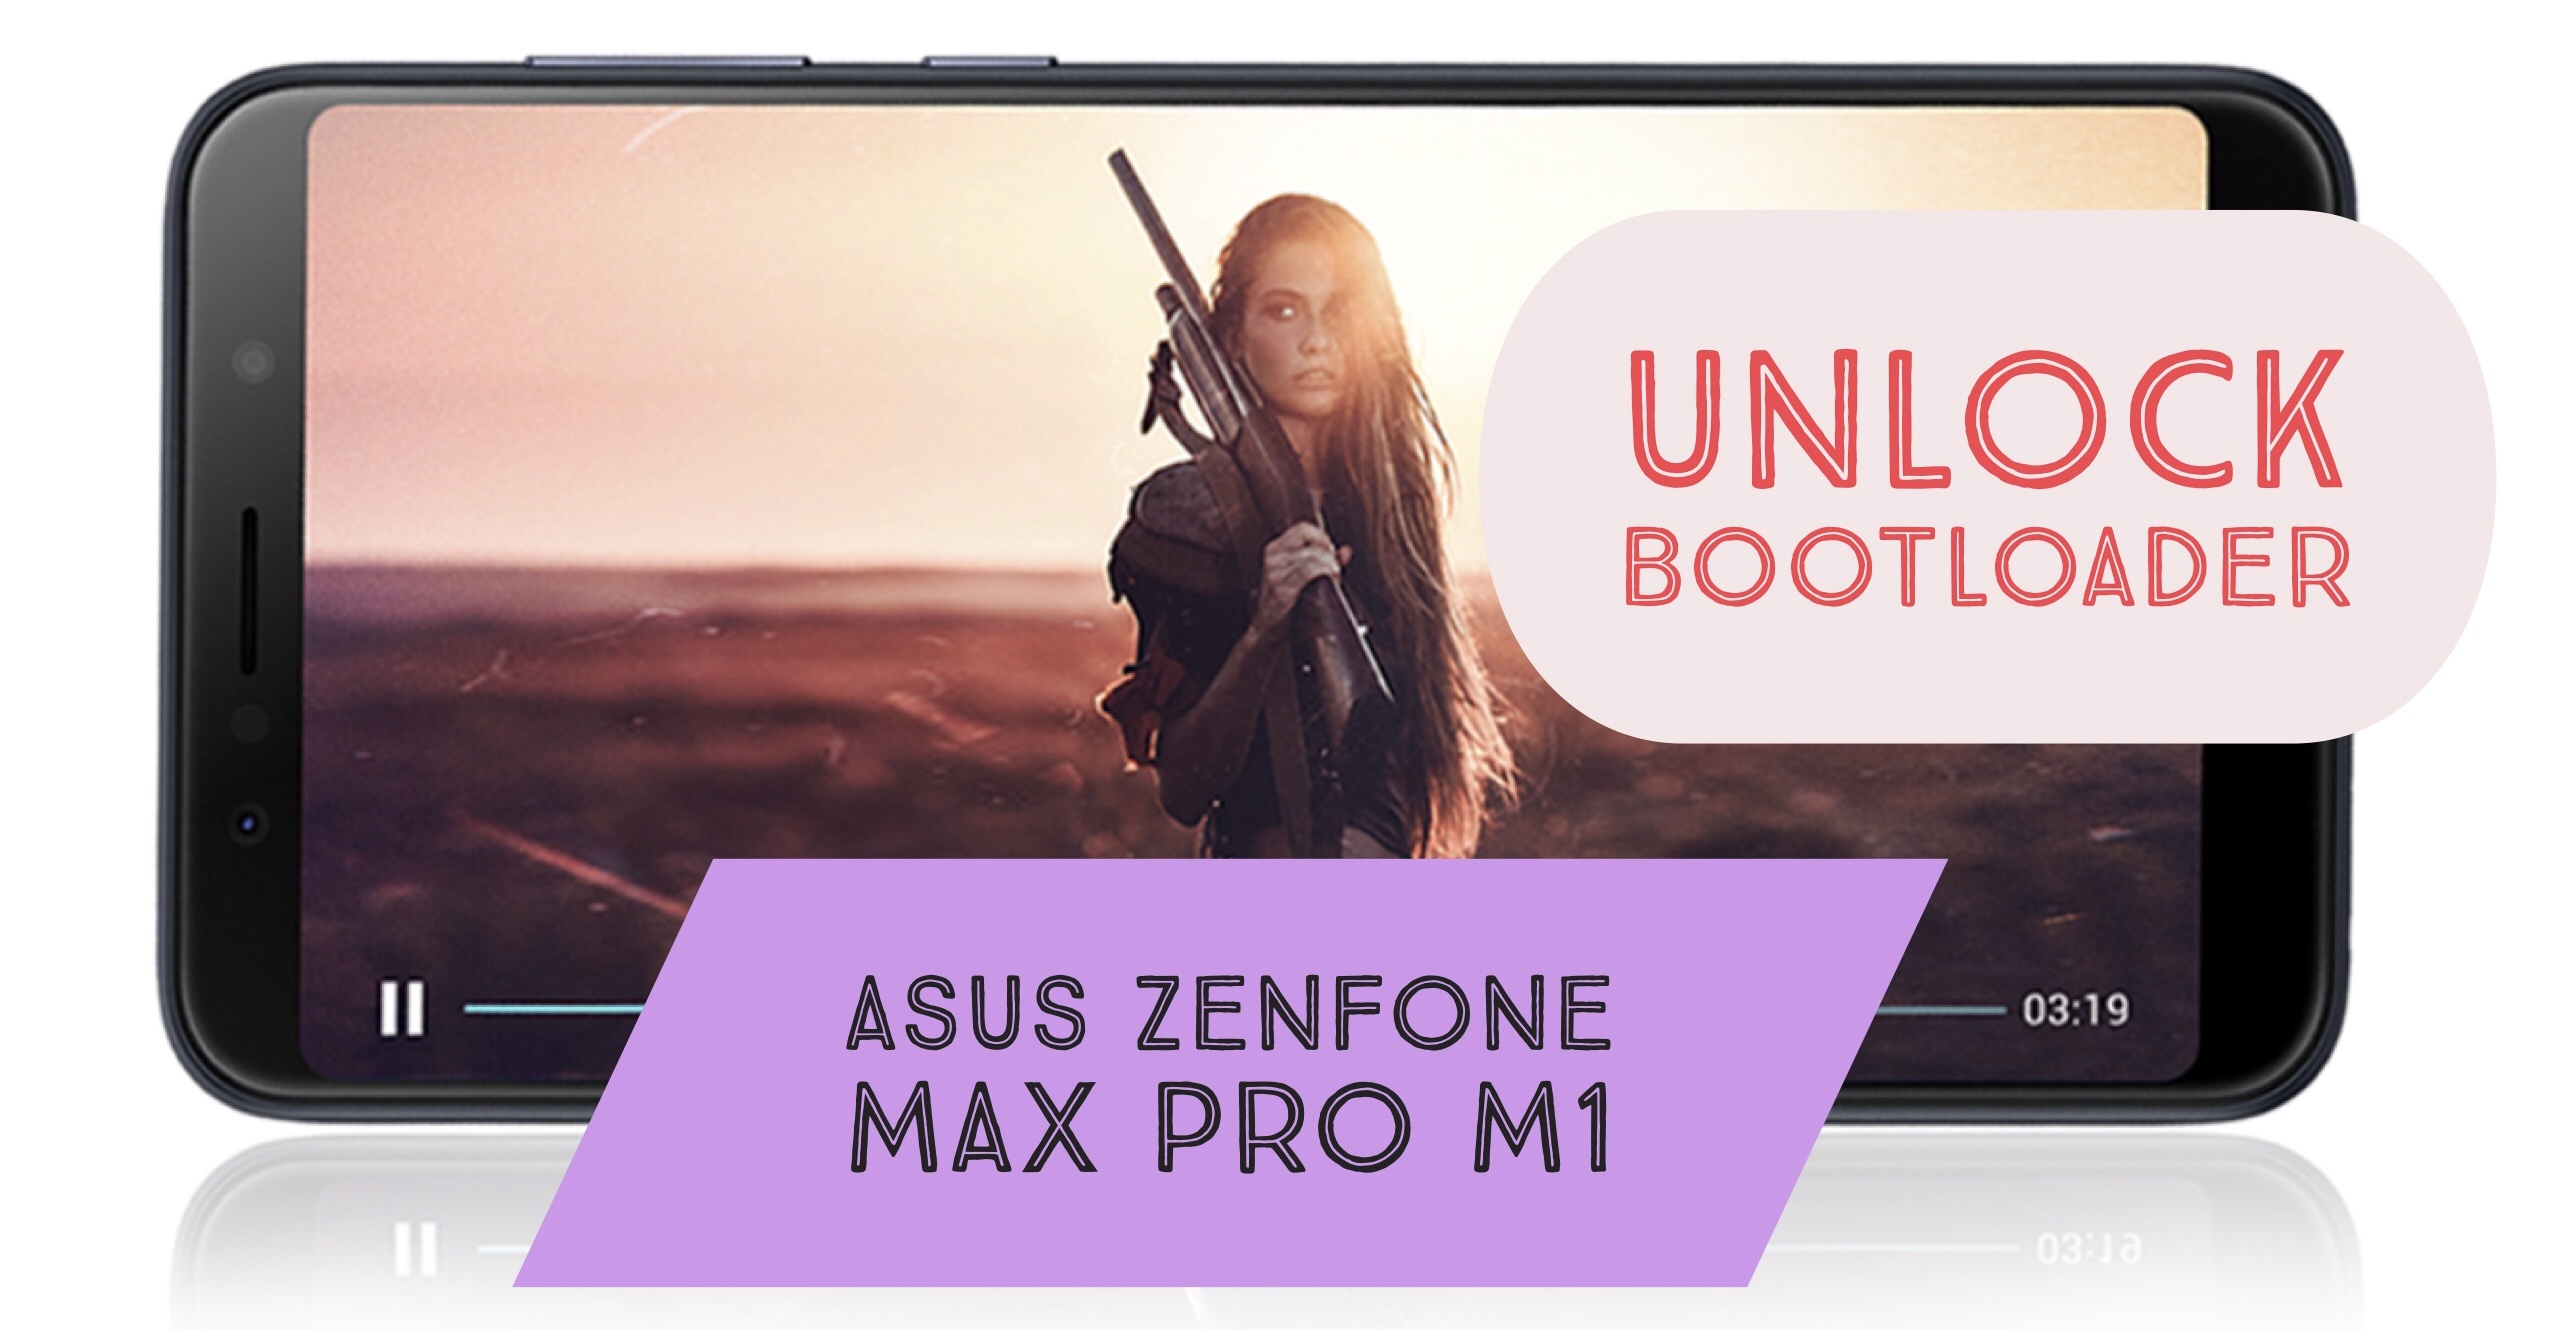 How to Unlock bootloader on ASUS Zenfone Max Pro M1? APK!